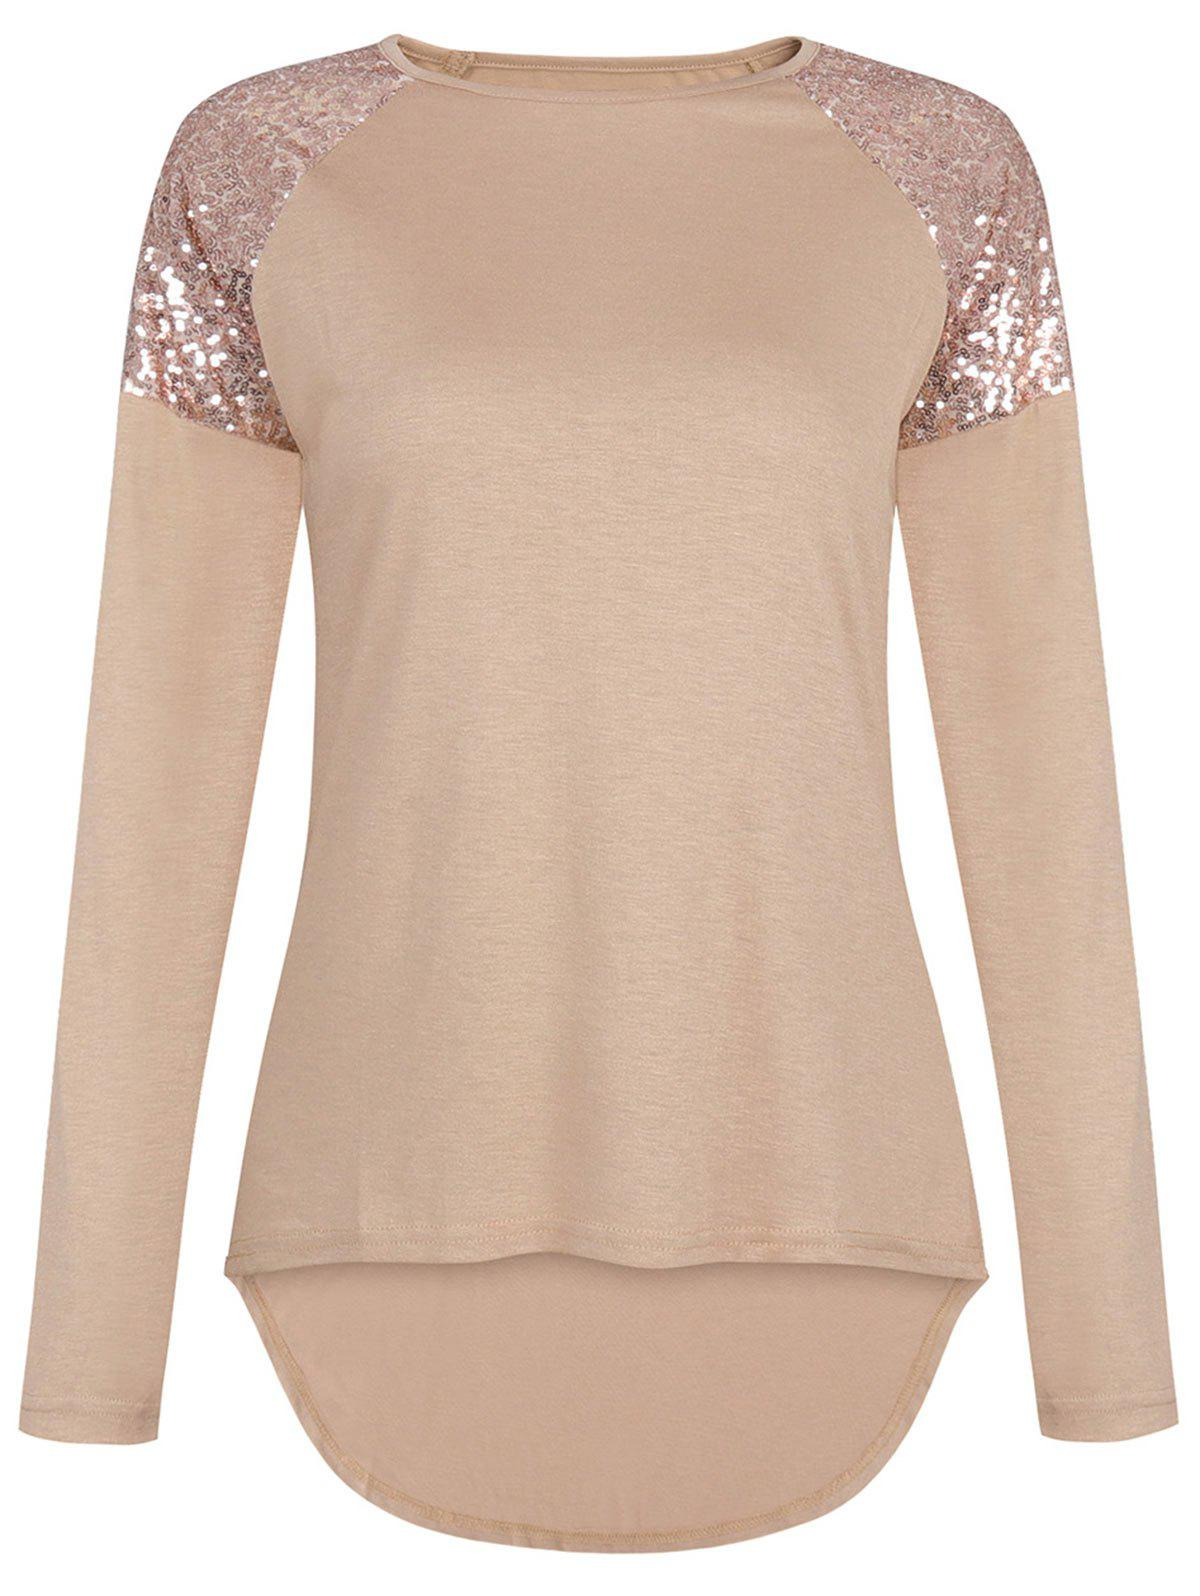 Sequin High Low Raglan Sleeve T-shirt - KHAKI S